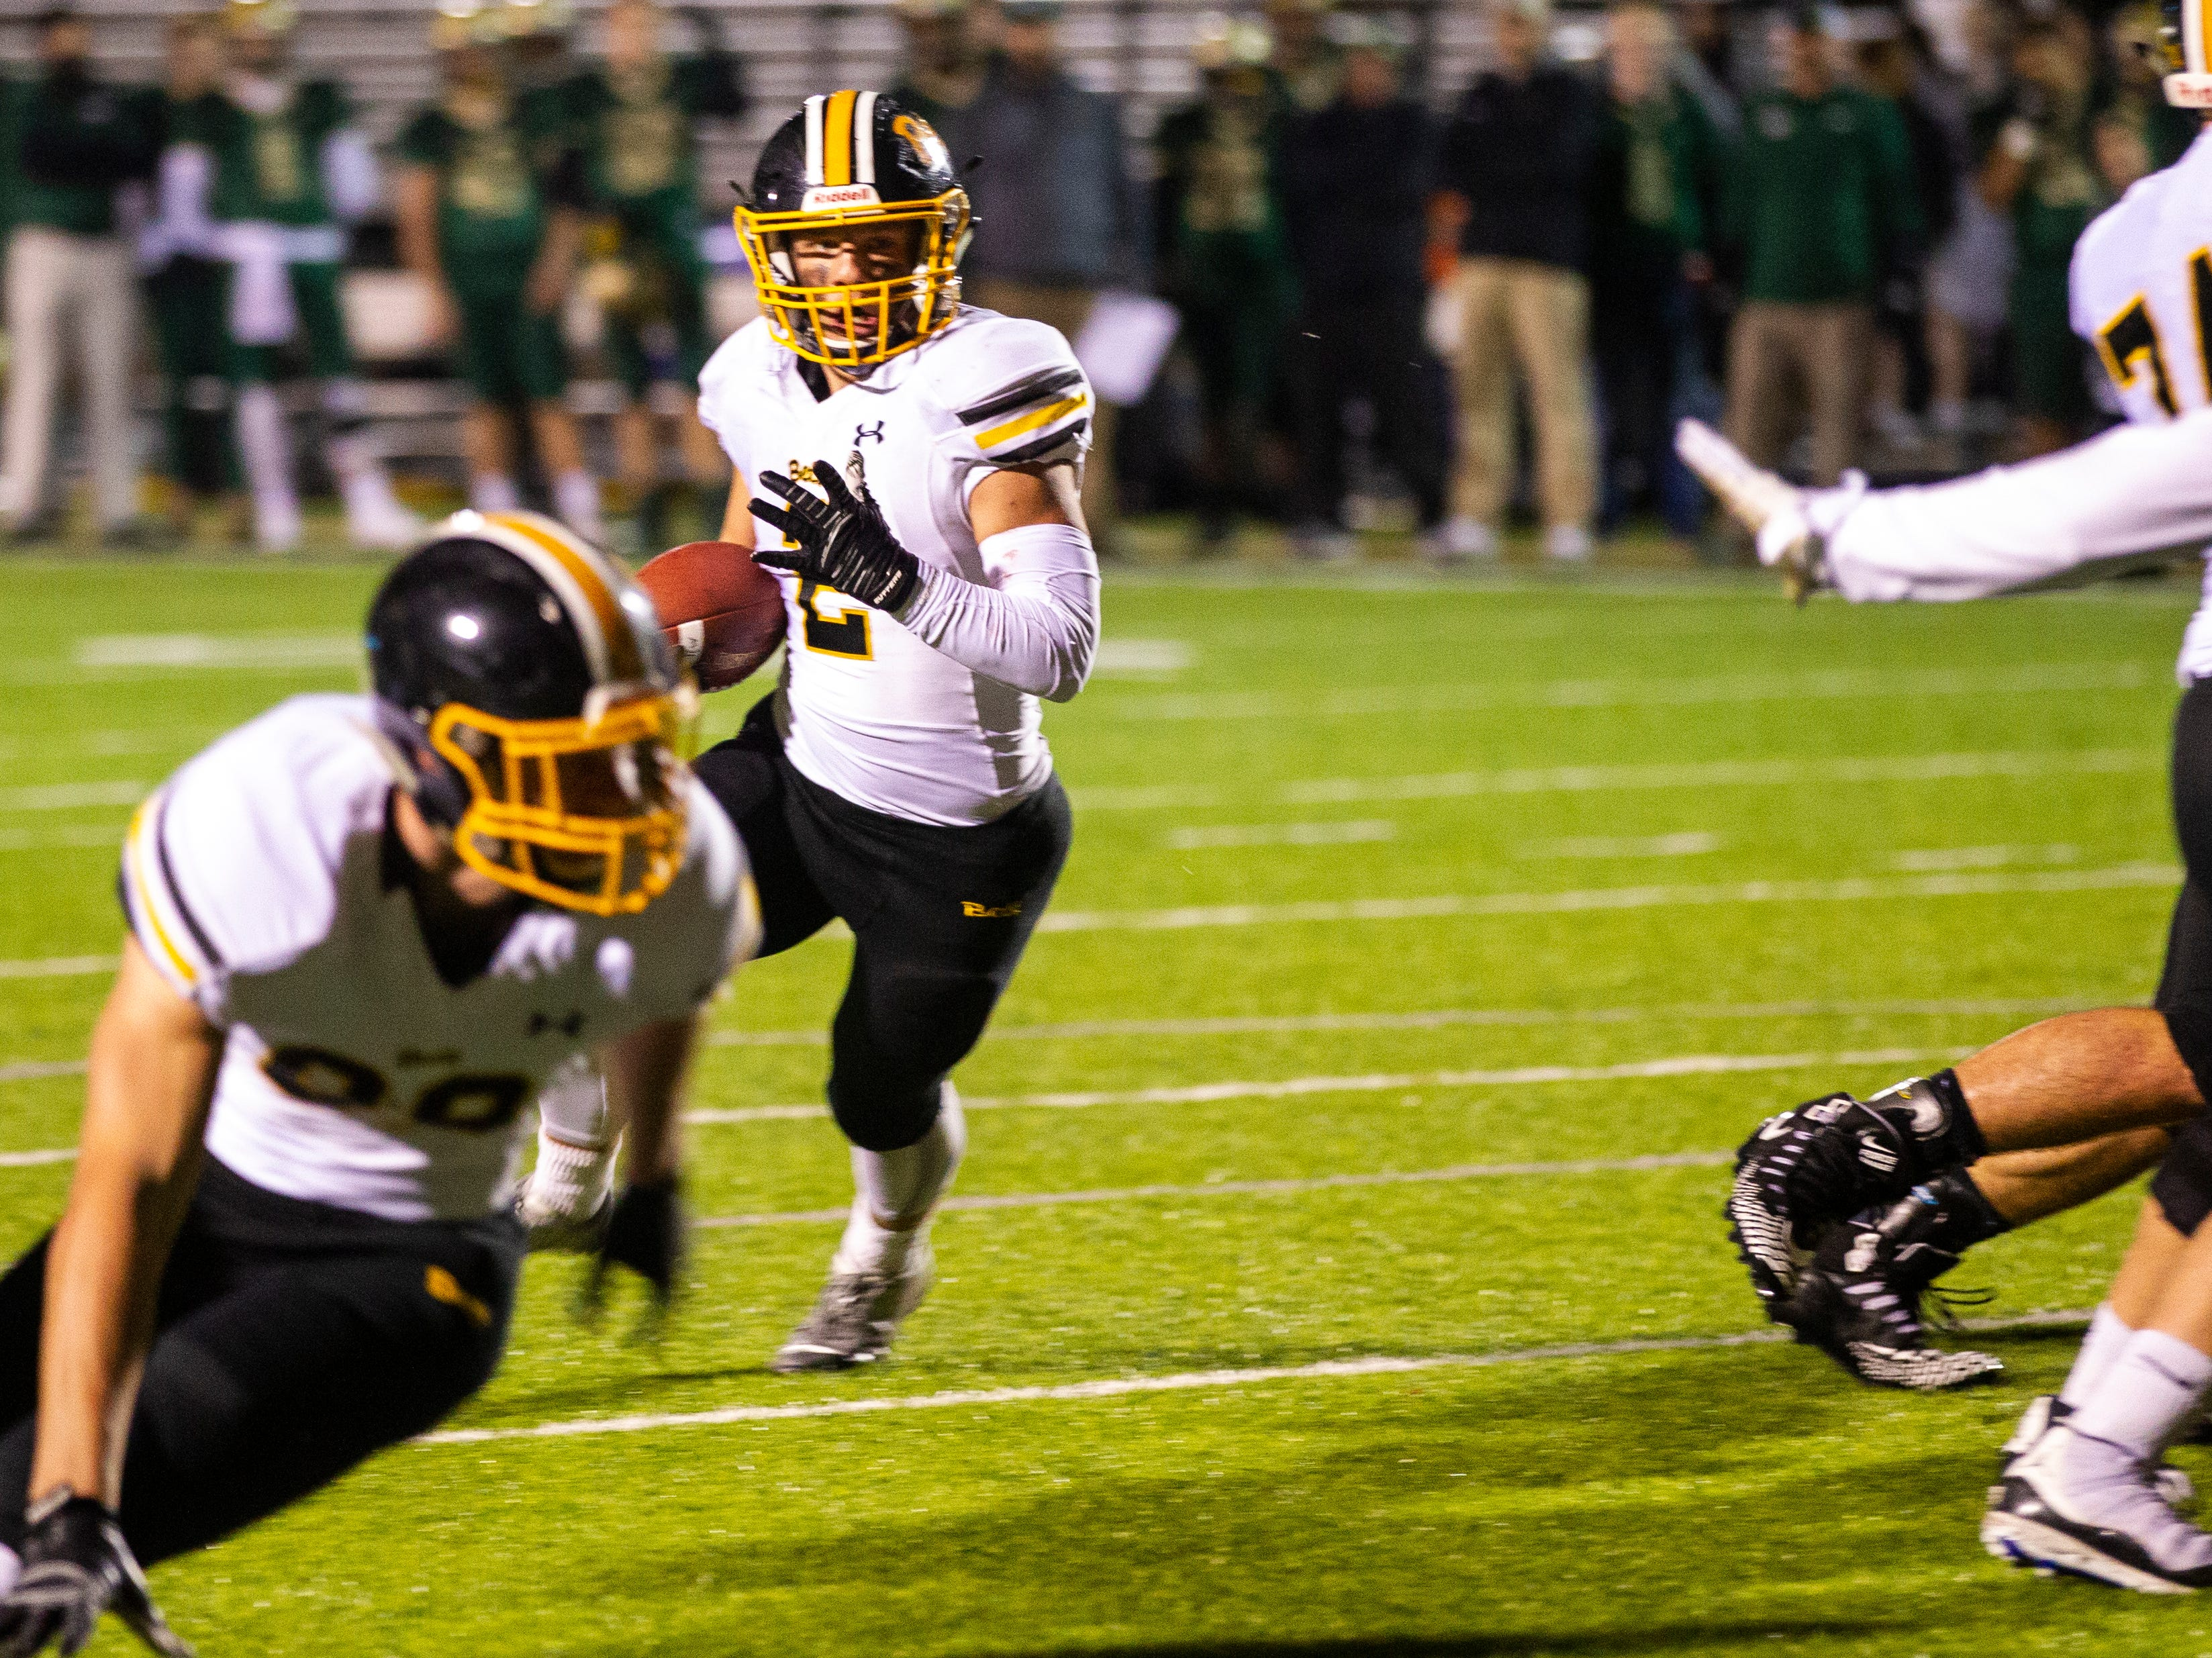 Bettendorf's Austin Kalar (2) rushes during a Class 4A quarter final football game on Friday, Nov. 2, 2018, at Trojan Field in Iowa City.